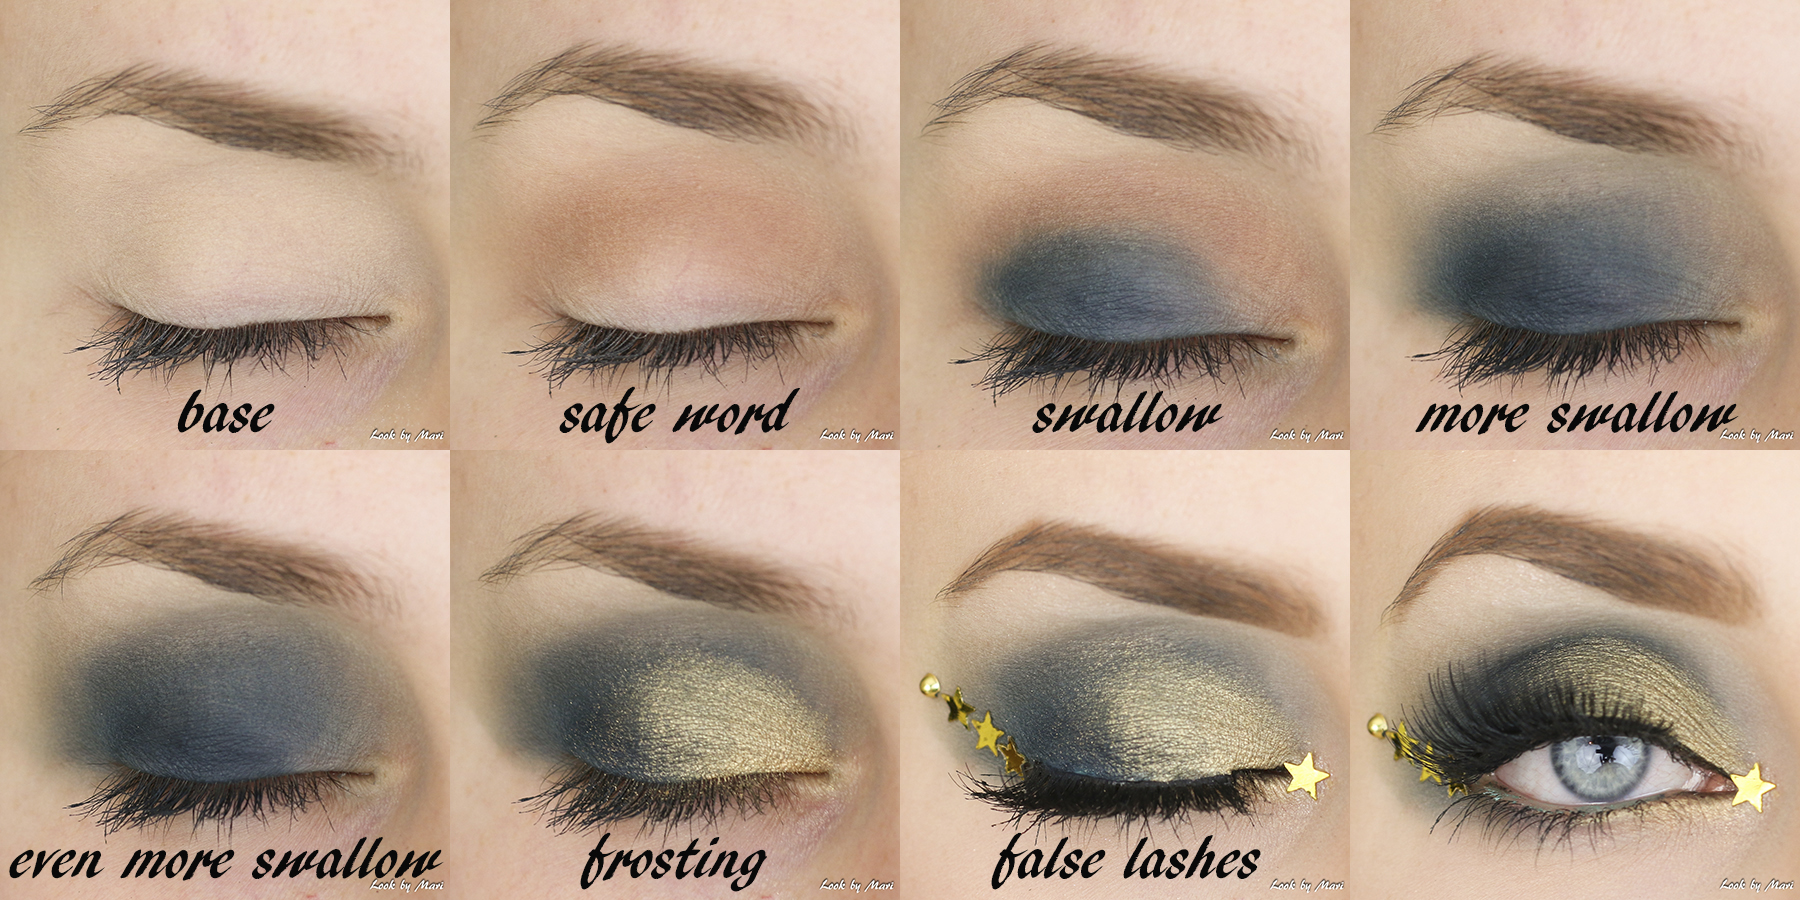 5 jeffree star androgyny eyeshadow palette review inspo ideas tutorial inspiration green